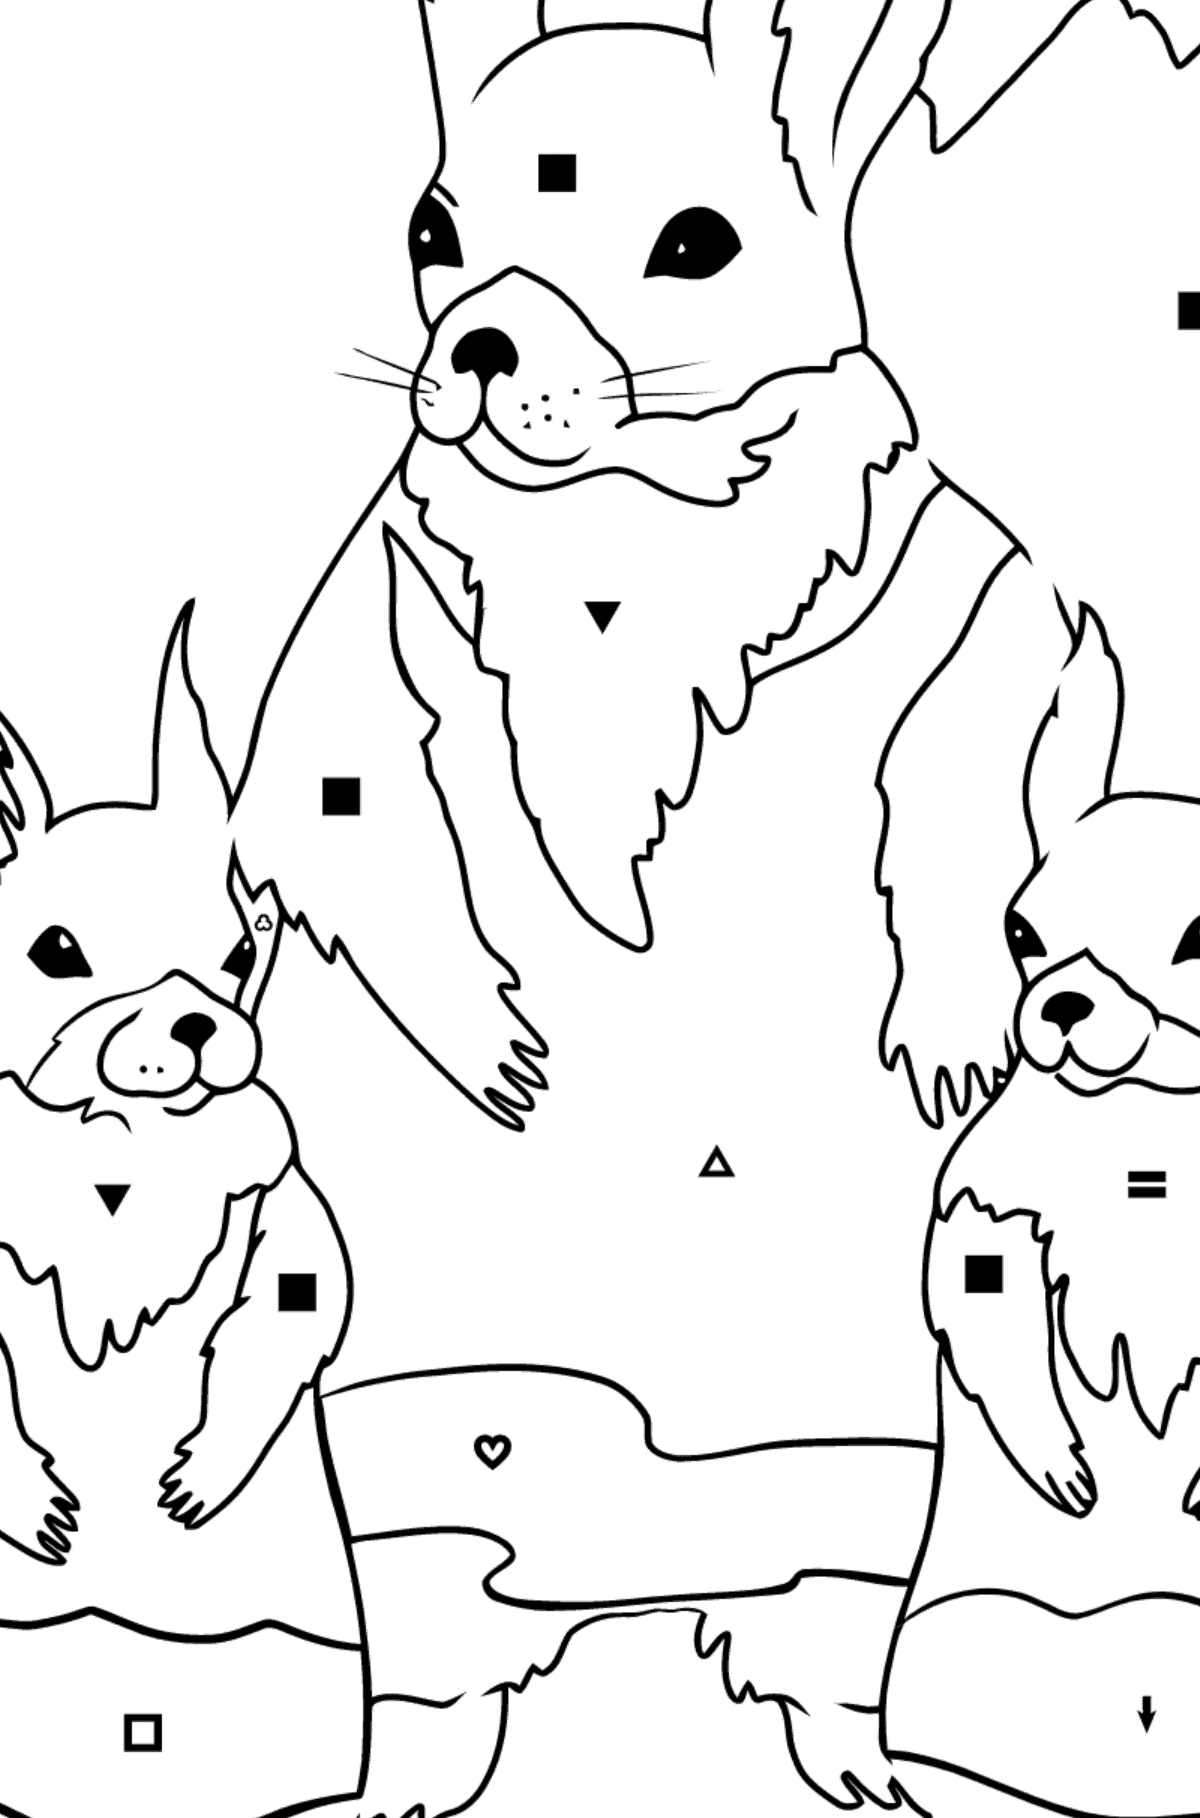 Spring Coloring Page - Squirrels are Preparing to Greet the Sun for Children  - Color by Symbols and Geometric Shapes